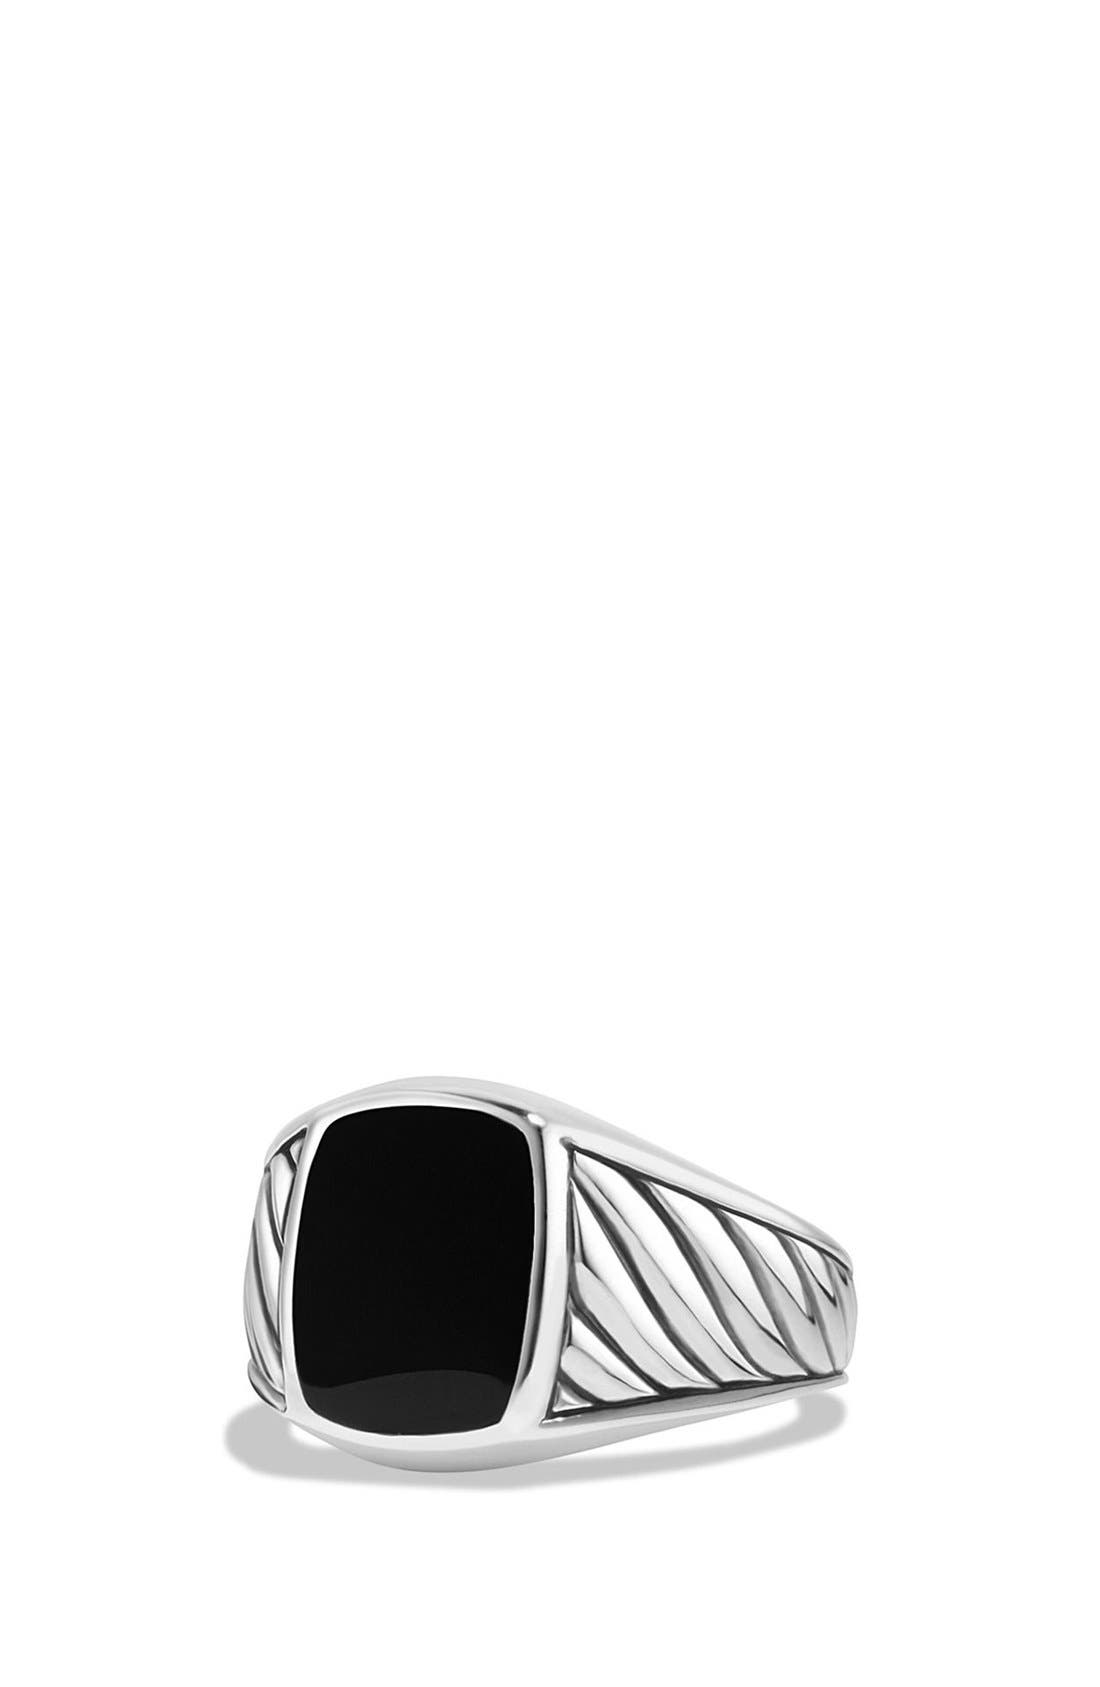 'Cable Classics' Signet Ring,                         Main,                         color, SILVER/ BLACK ONYX